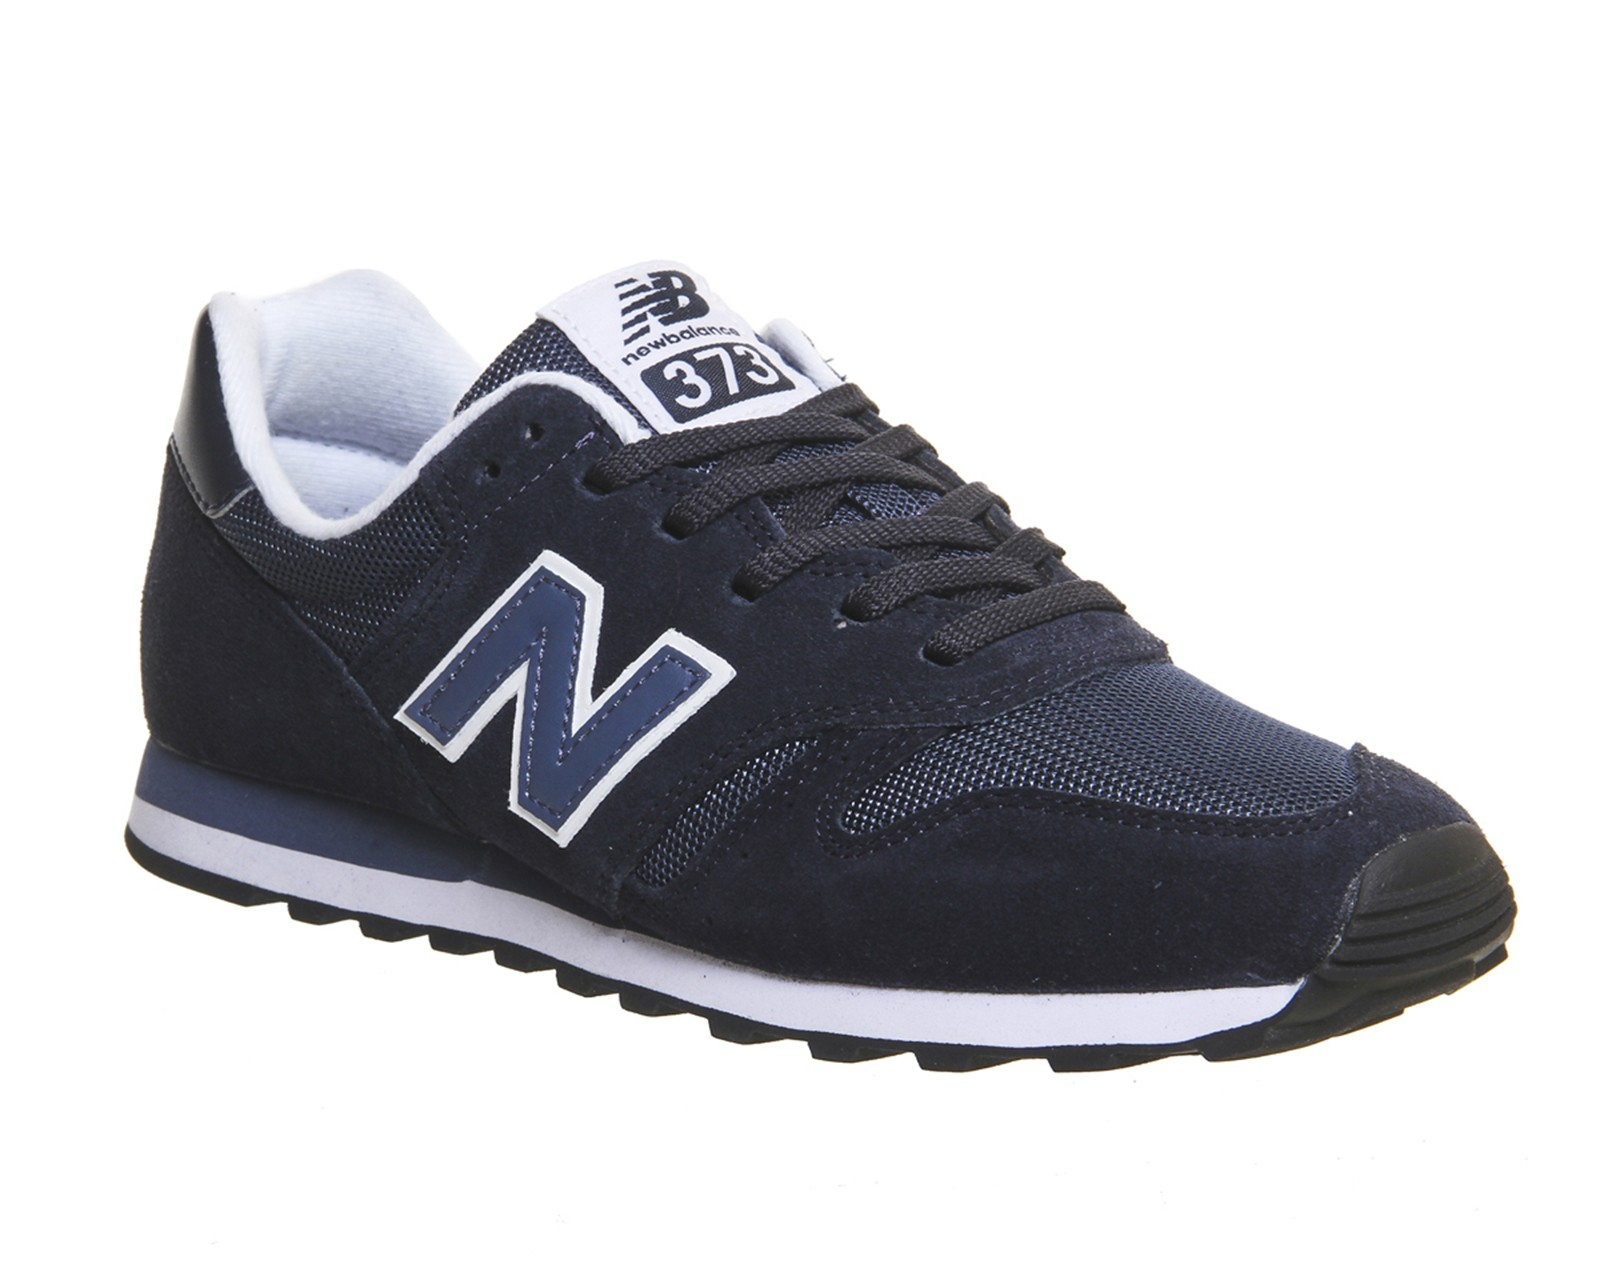 new balance 373 hombres gris